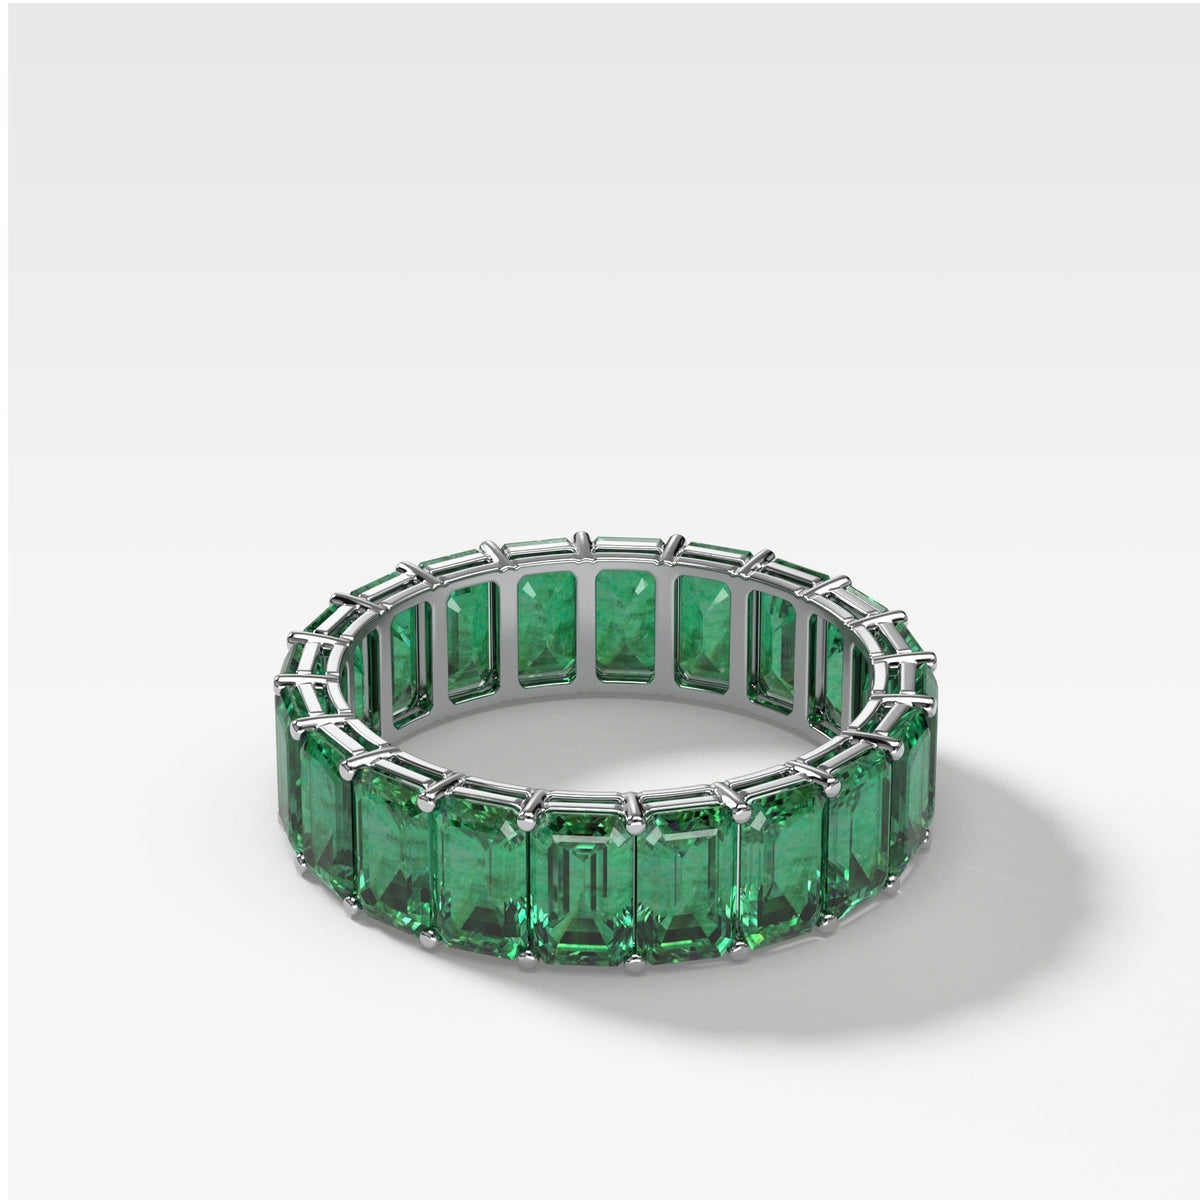 Green Emerald Emerald Cut Eternity band in White Gold by Good Stone